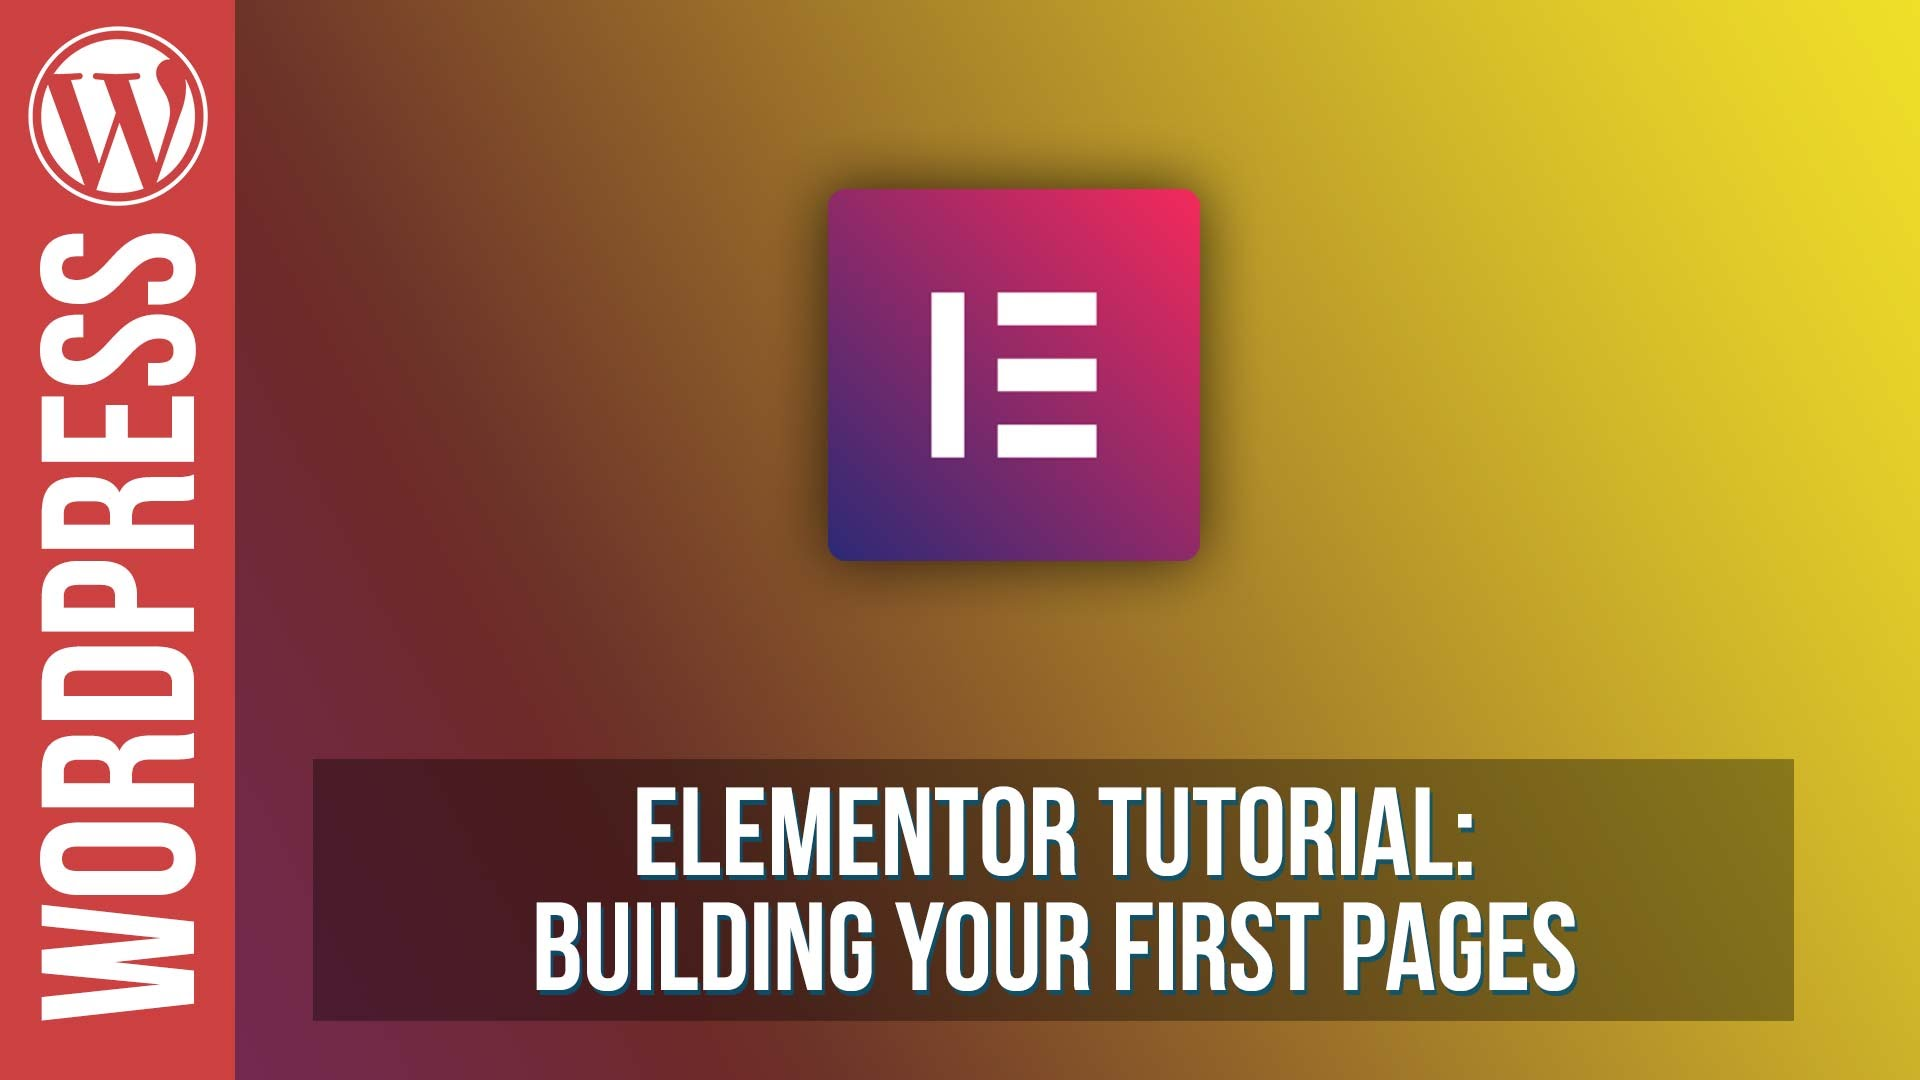 Elementor for WordPress – Building Your First Pages